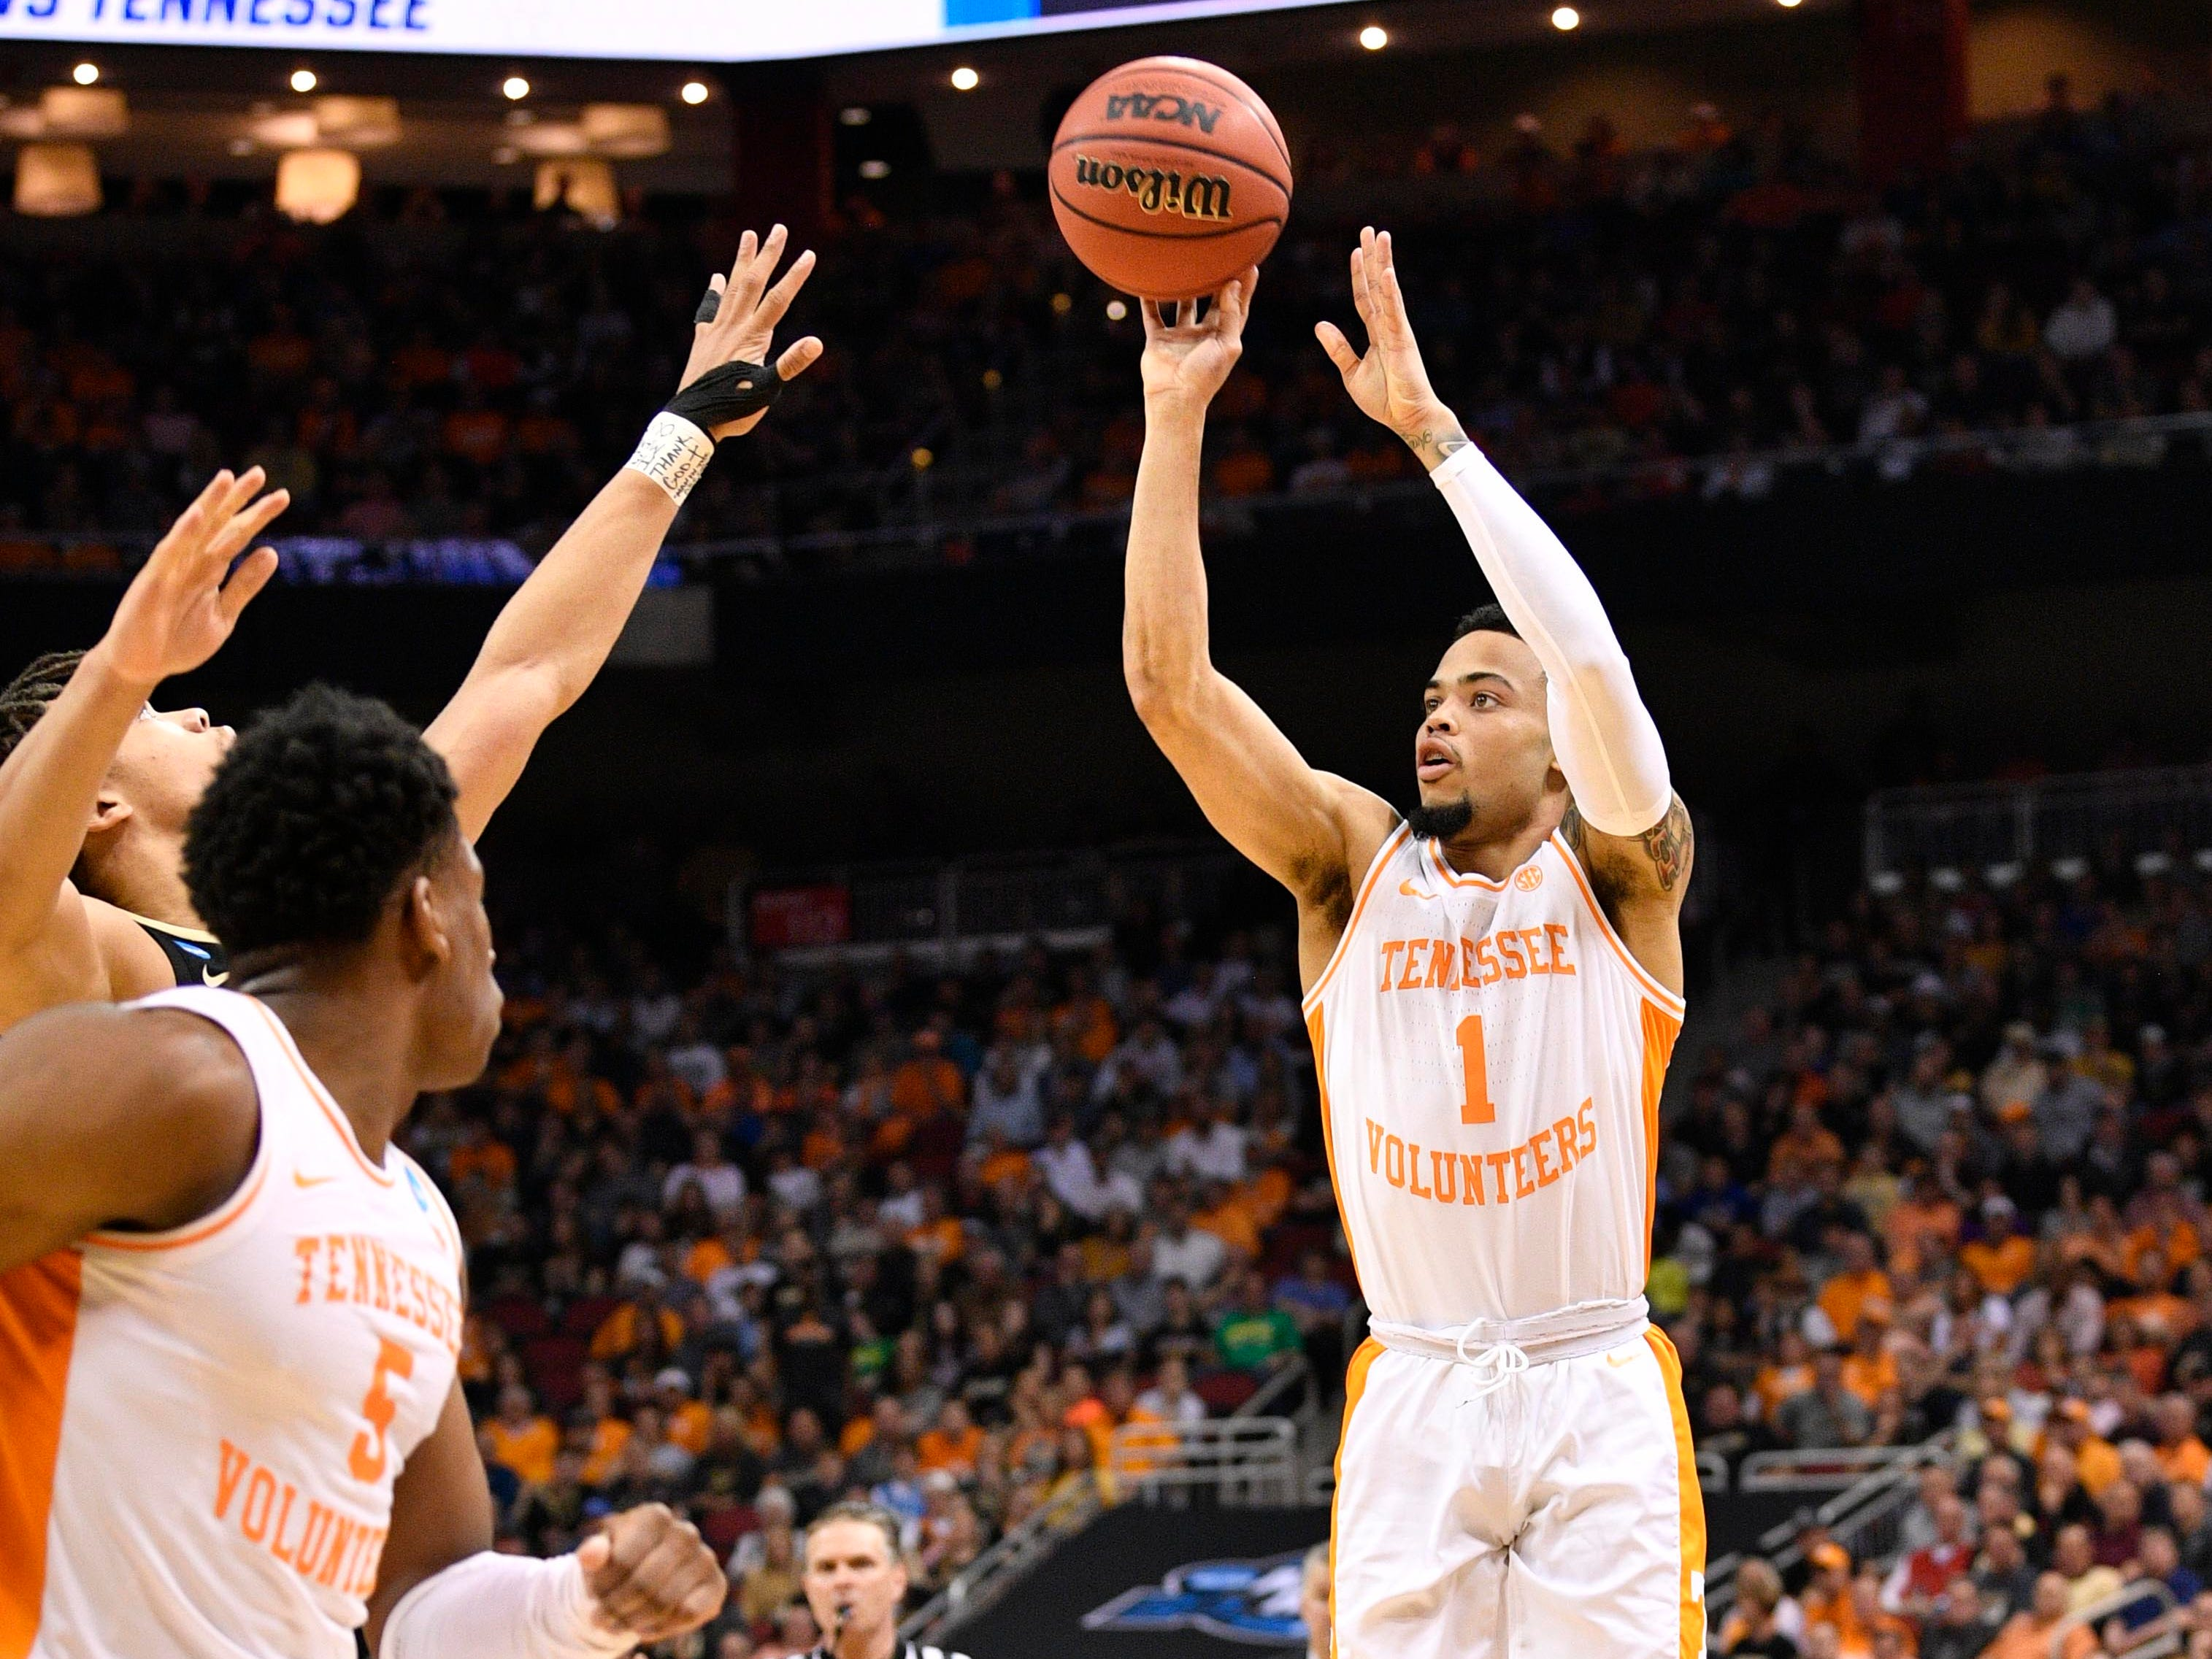 Mar 28, 2019; Louisville, KY, United States; Tennessee Volunteers guard Lamonte Turner (1) shoots during the second half in the semifinals of the south regional against the Purdue Boilermakers of the 2019 NCAA Tournament at KFC Yum Center. Mandatory Credit: Jamie Rhodes-USA TODAY Sports